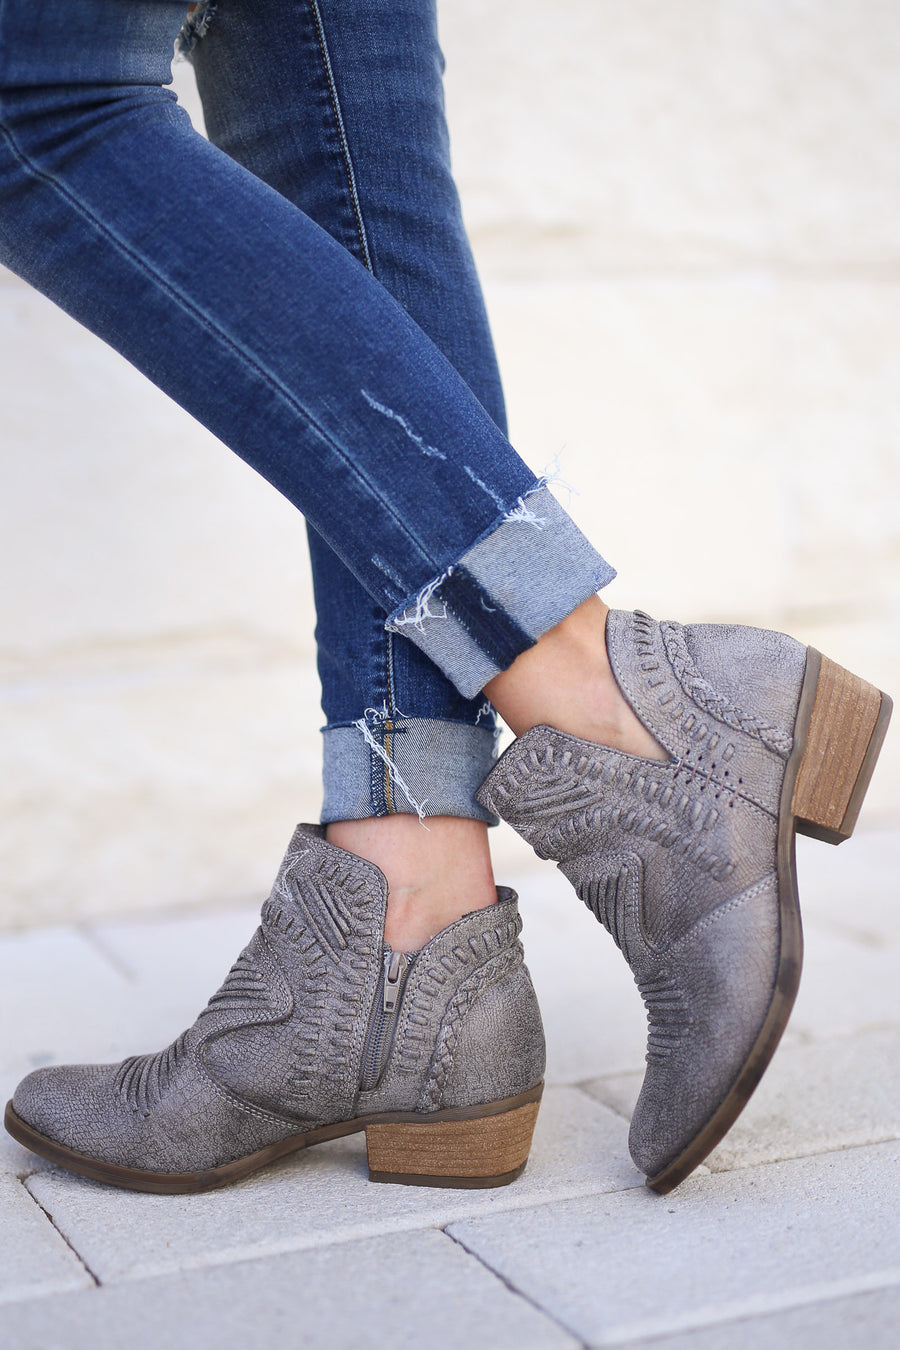 NOSARA- Woven Detail Booties - Grey women's trendy vegan leather, textured, woven overlay, western design details, closet candy boutique 1